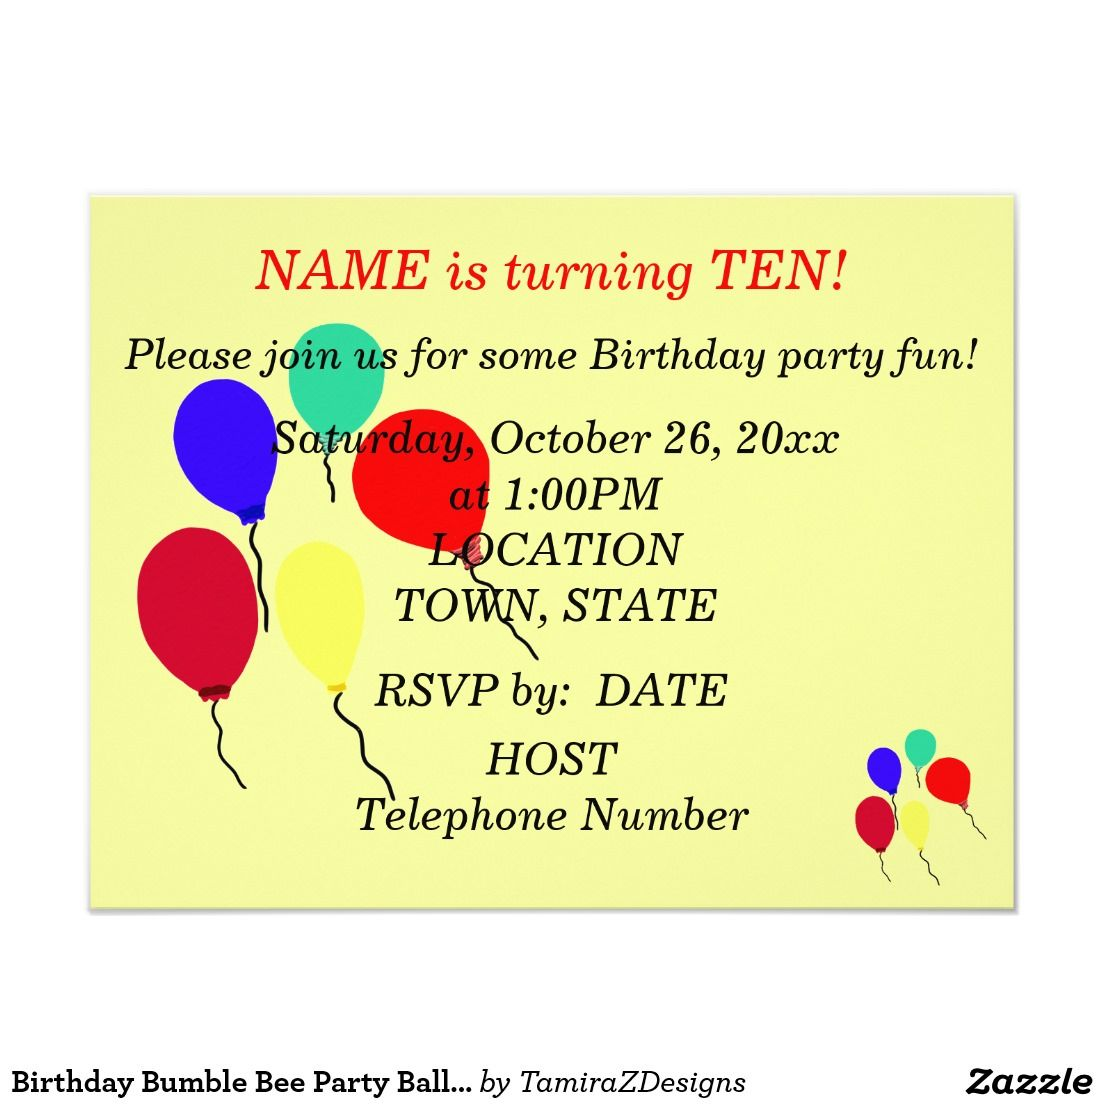 Birthday Bumble Bee Party Balloons Invitations Personalize Front Back Of For Any Age